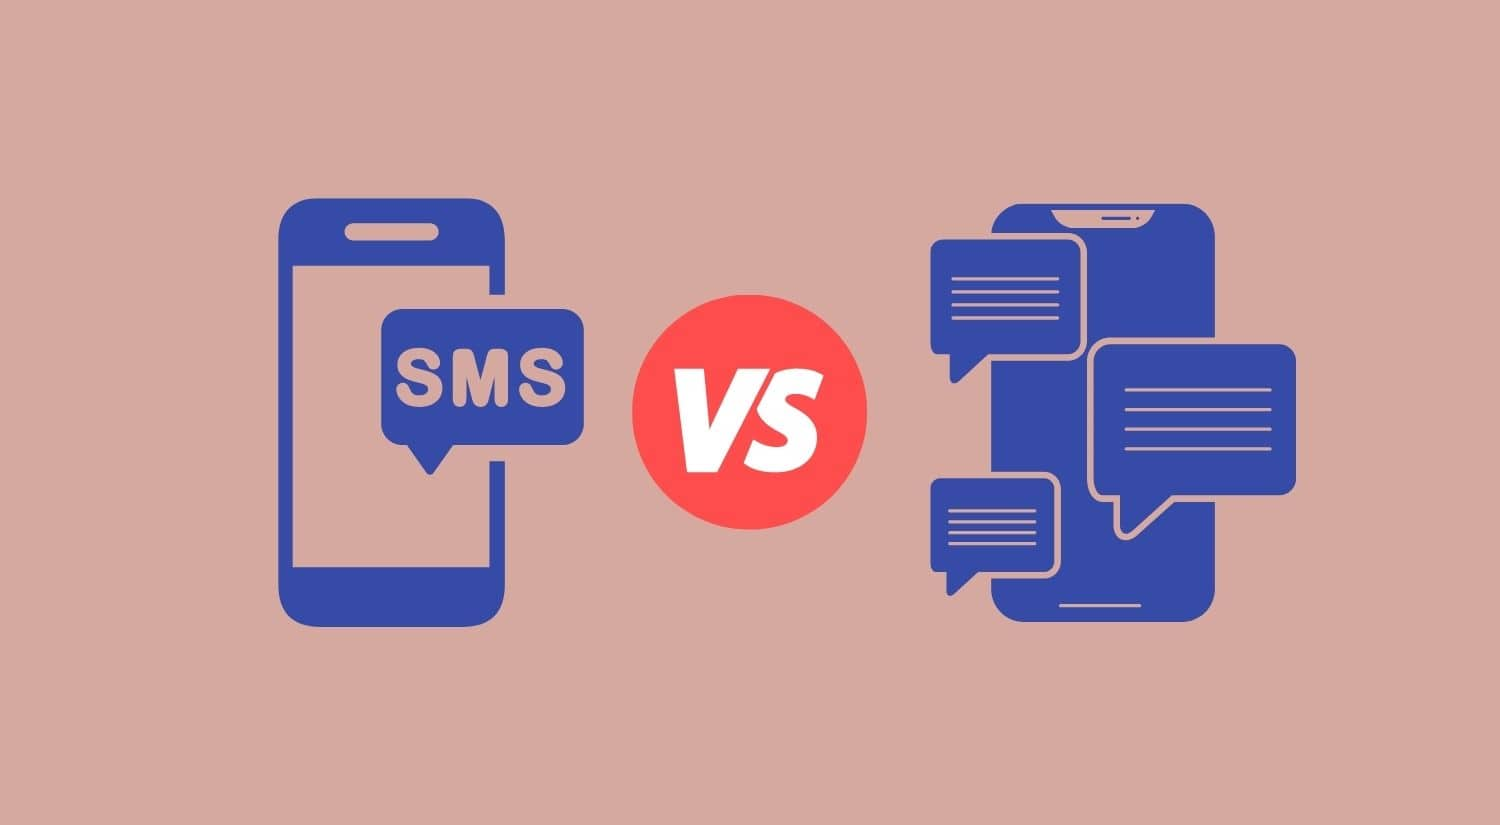 SMS vs Instant messaging OTT apps